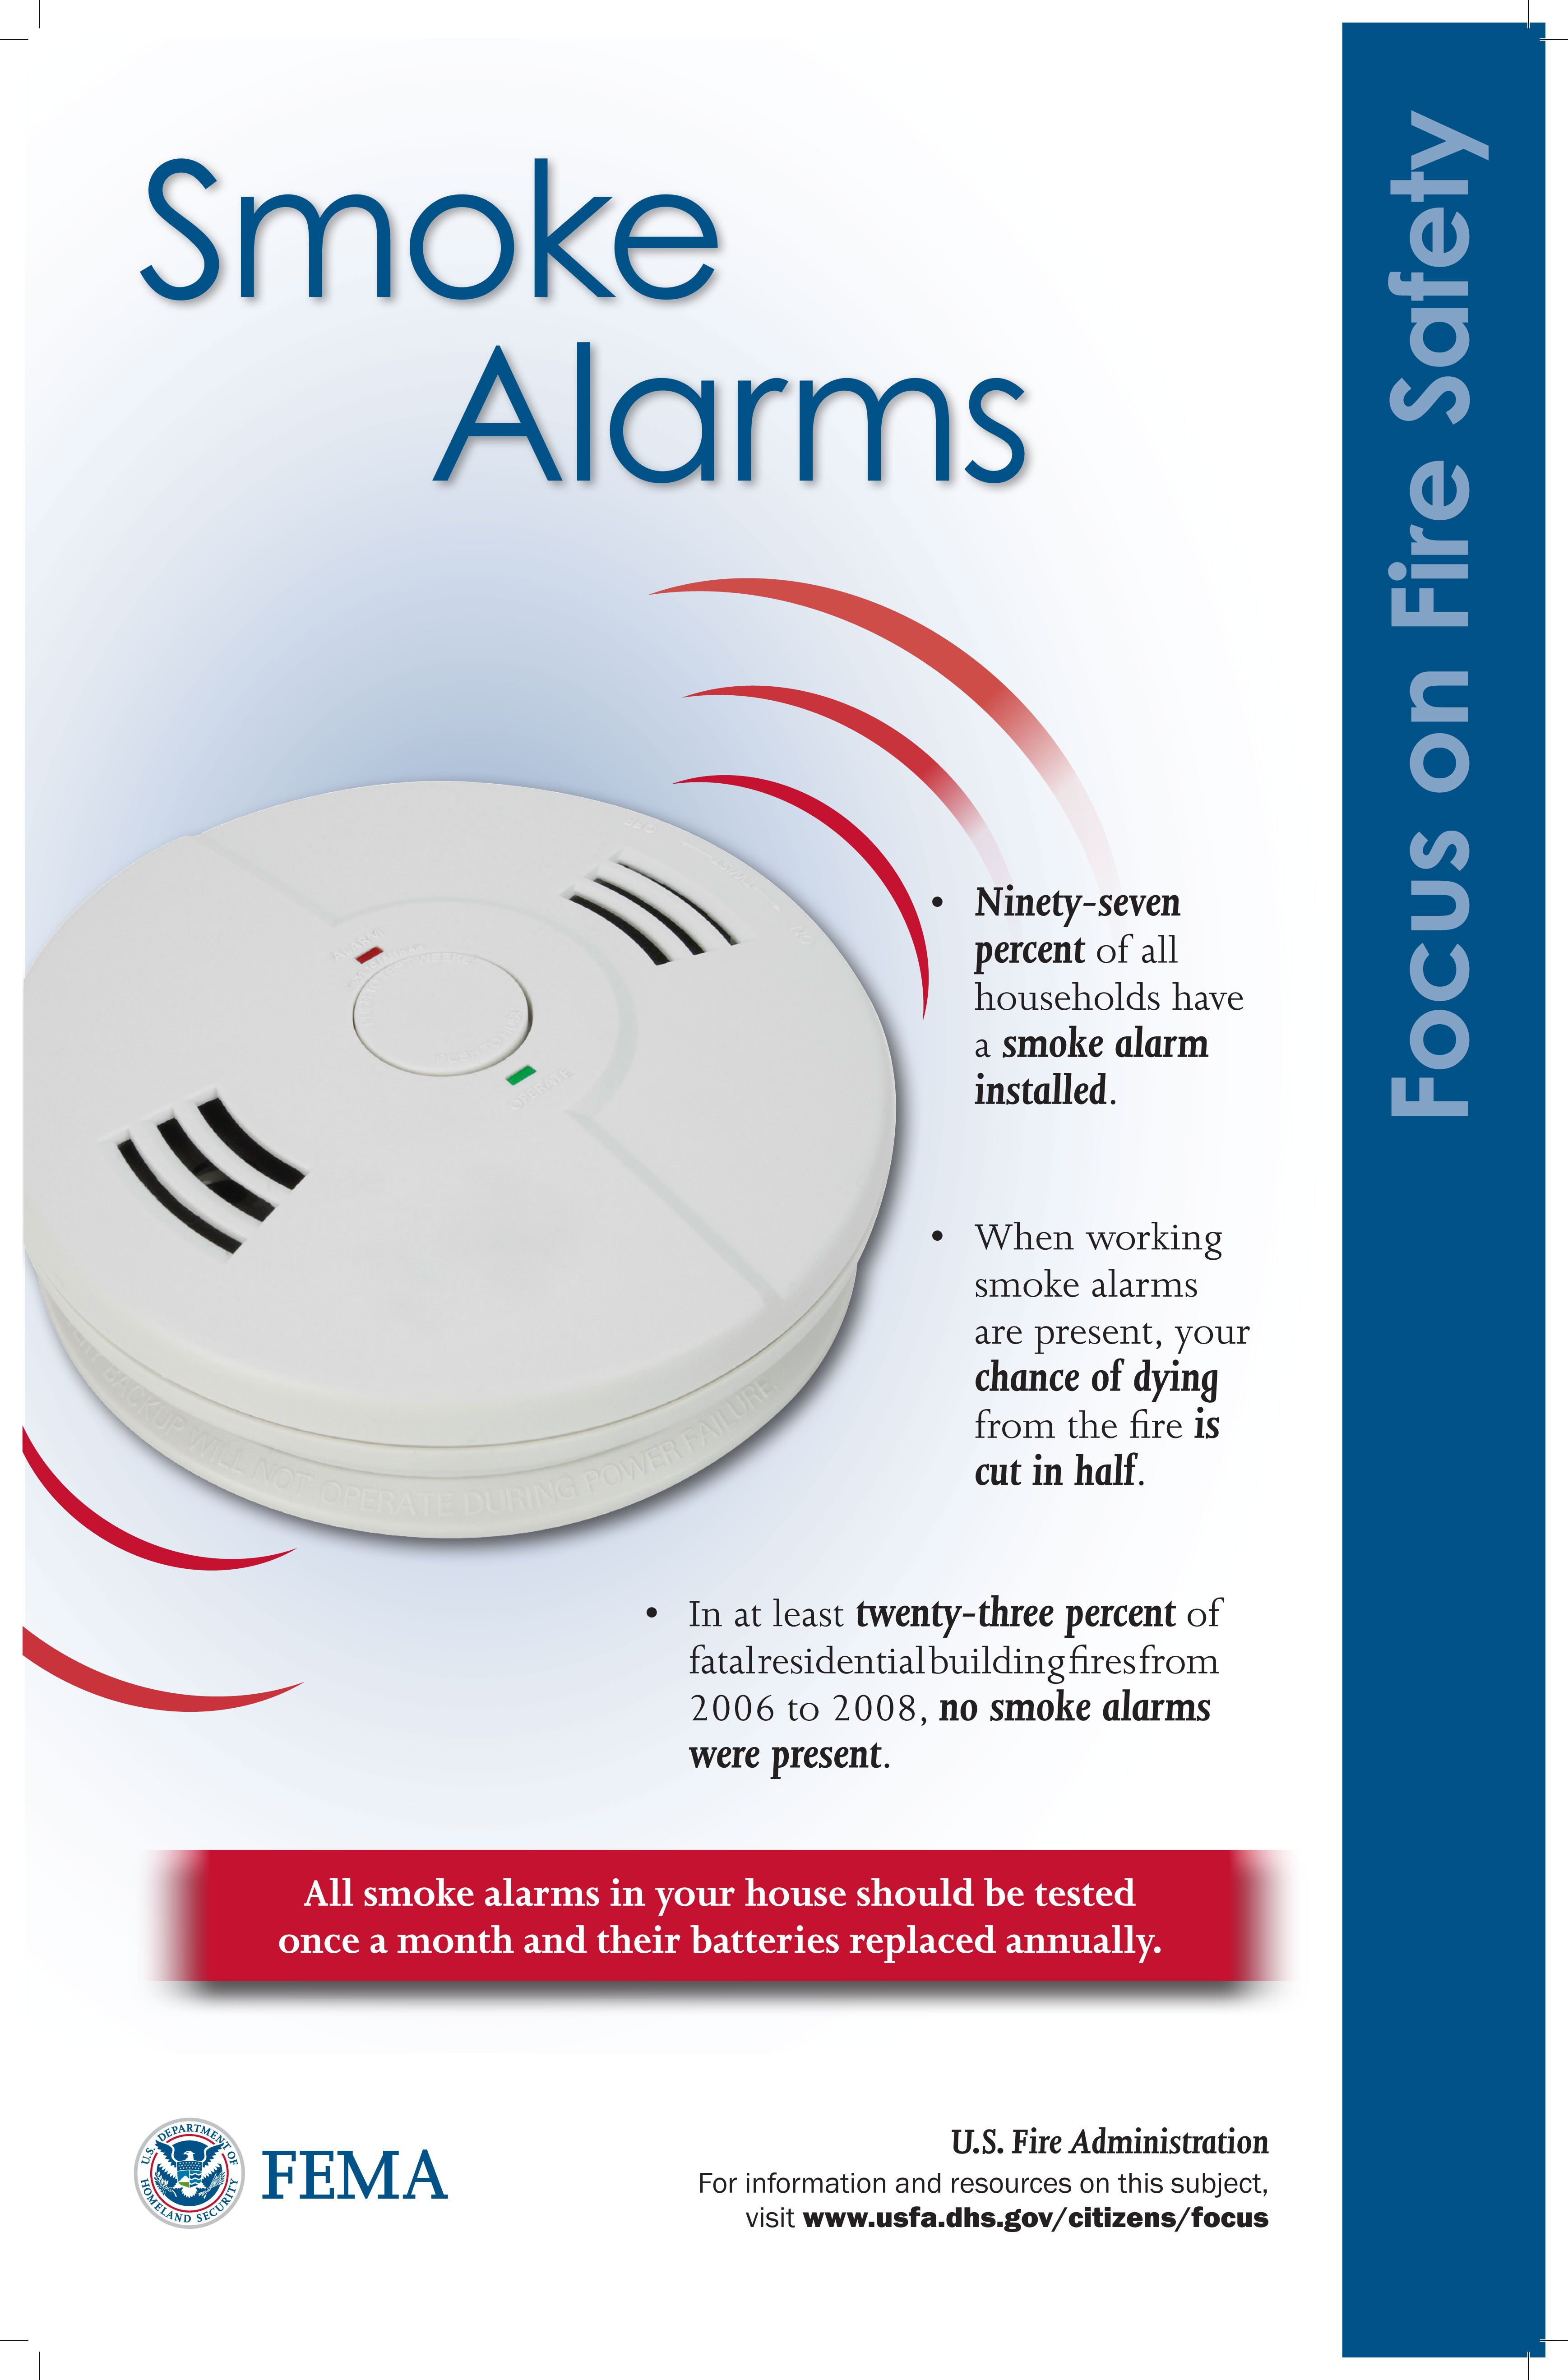 smoke alarms fire safety poster safety posters smoke alarms firefighter firefighter bar [ 3475 x 5275 Pixel ]